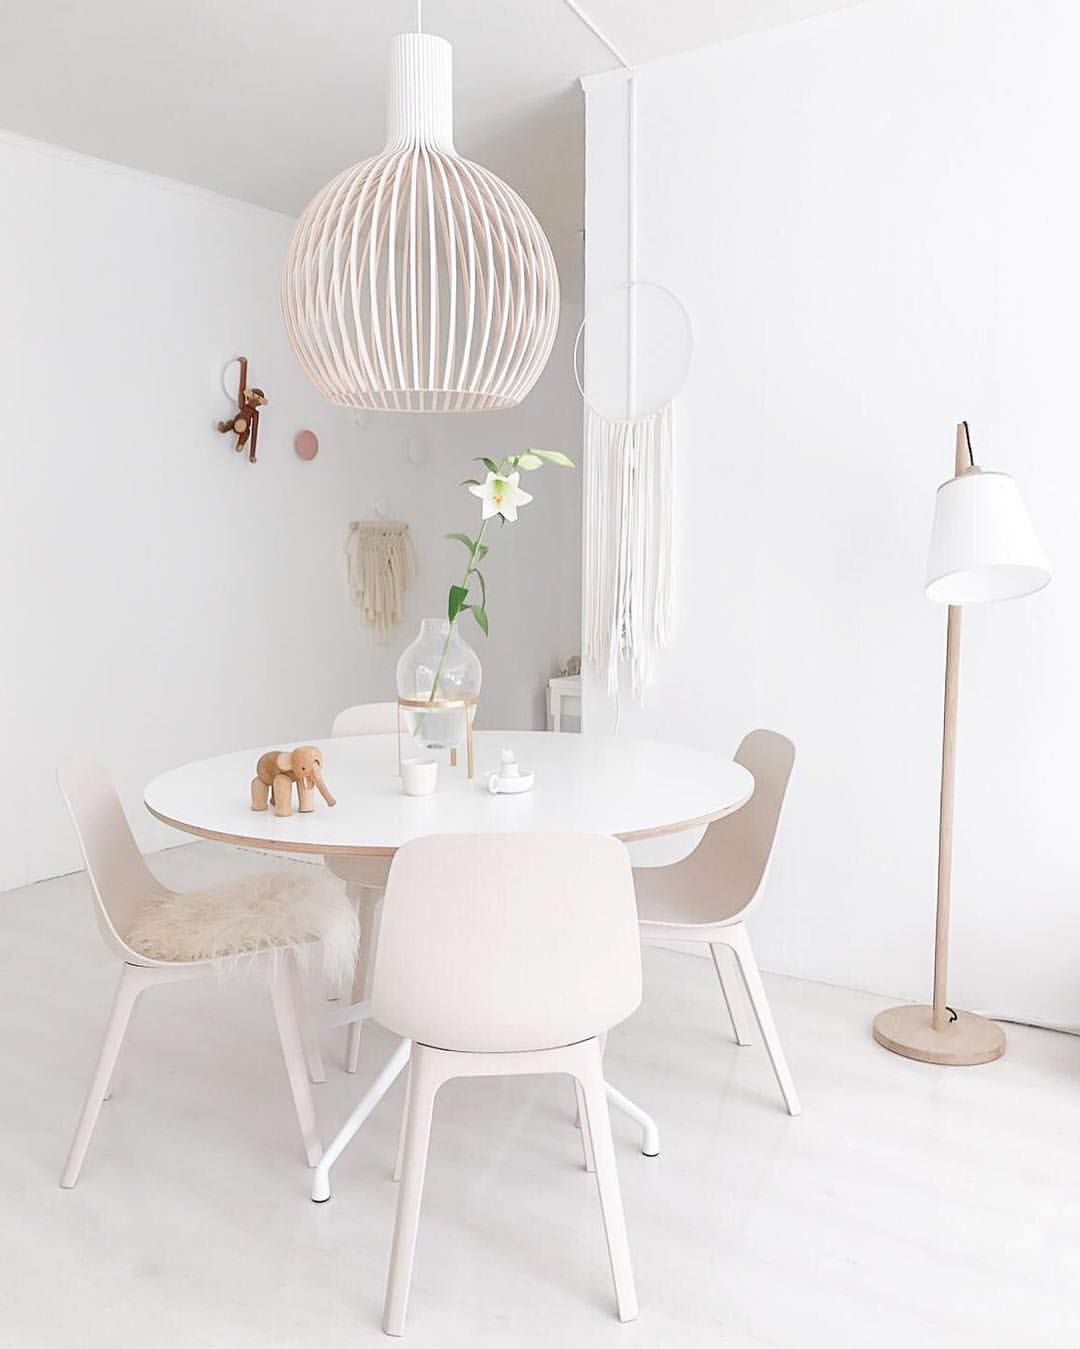 Pin by 莉 米 on 廚房 | Pinterest | Hay chair, Dining and Room